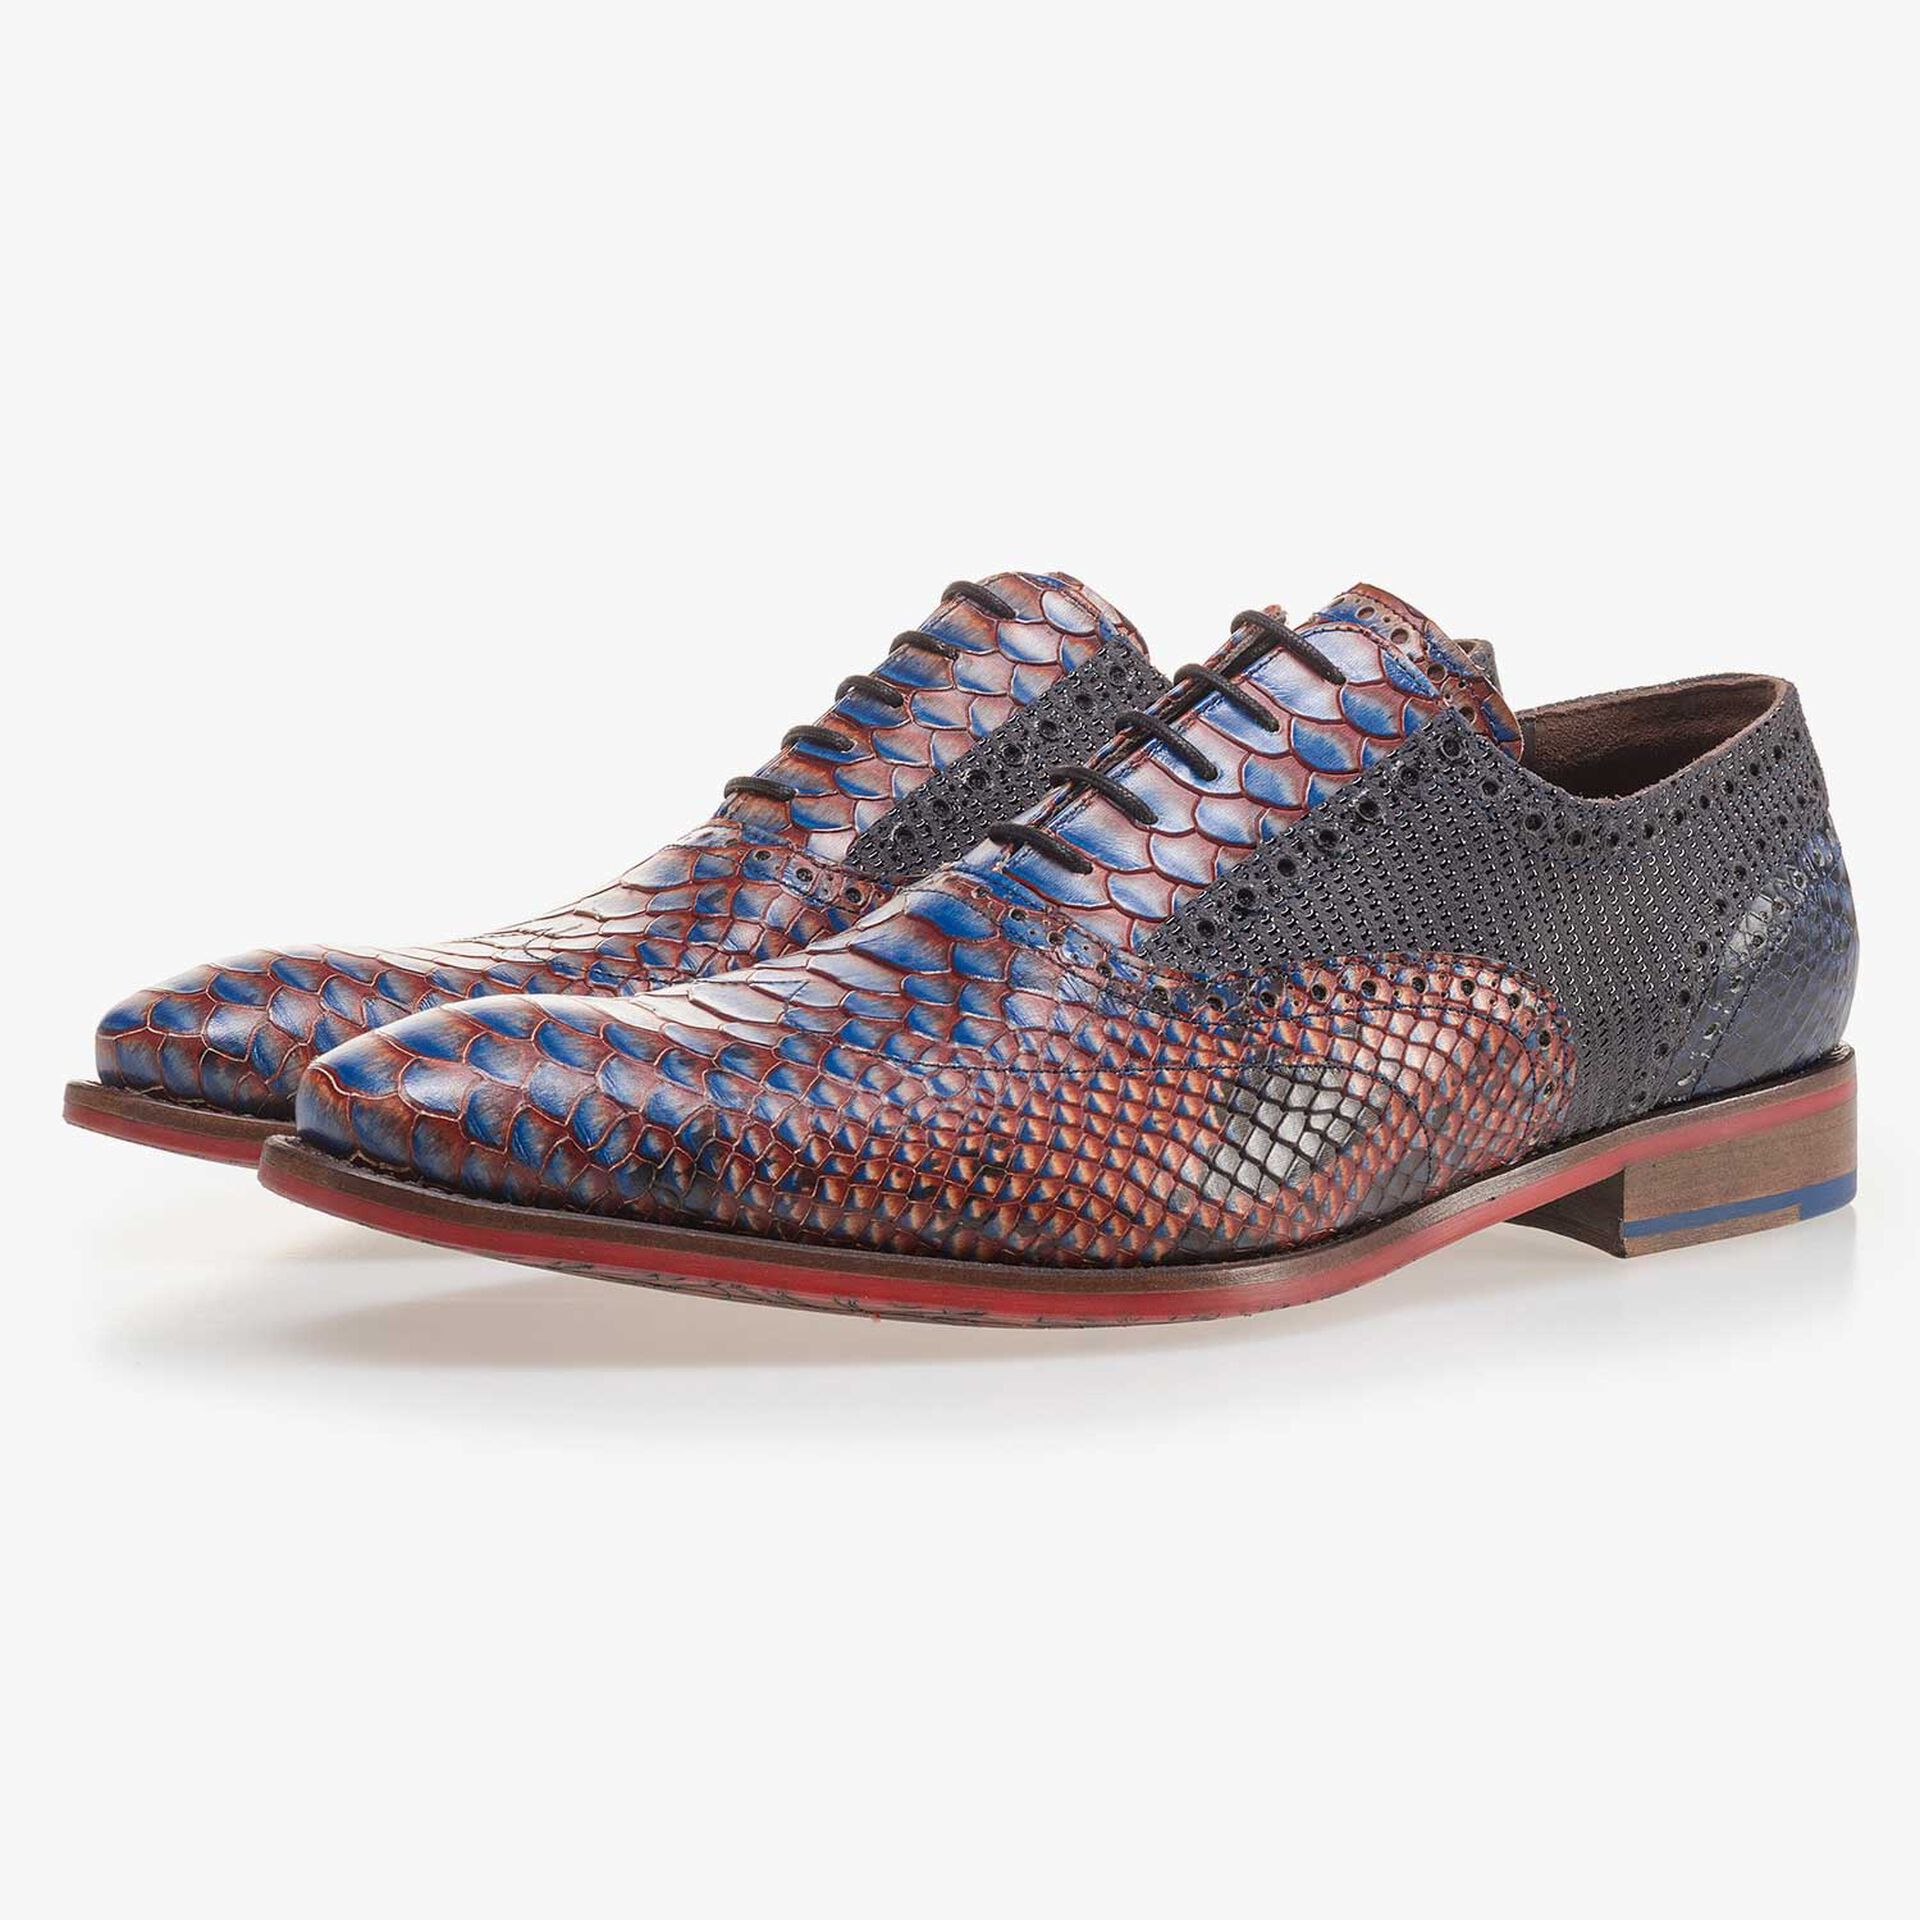 Calf's leather lace shoe with a snake print